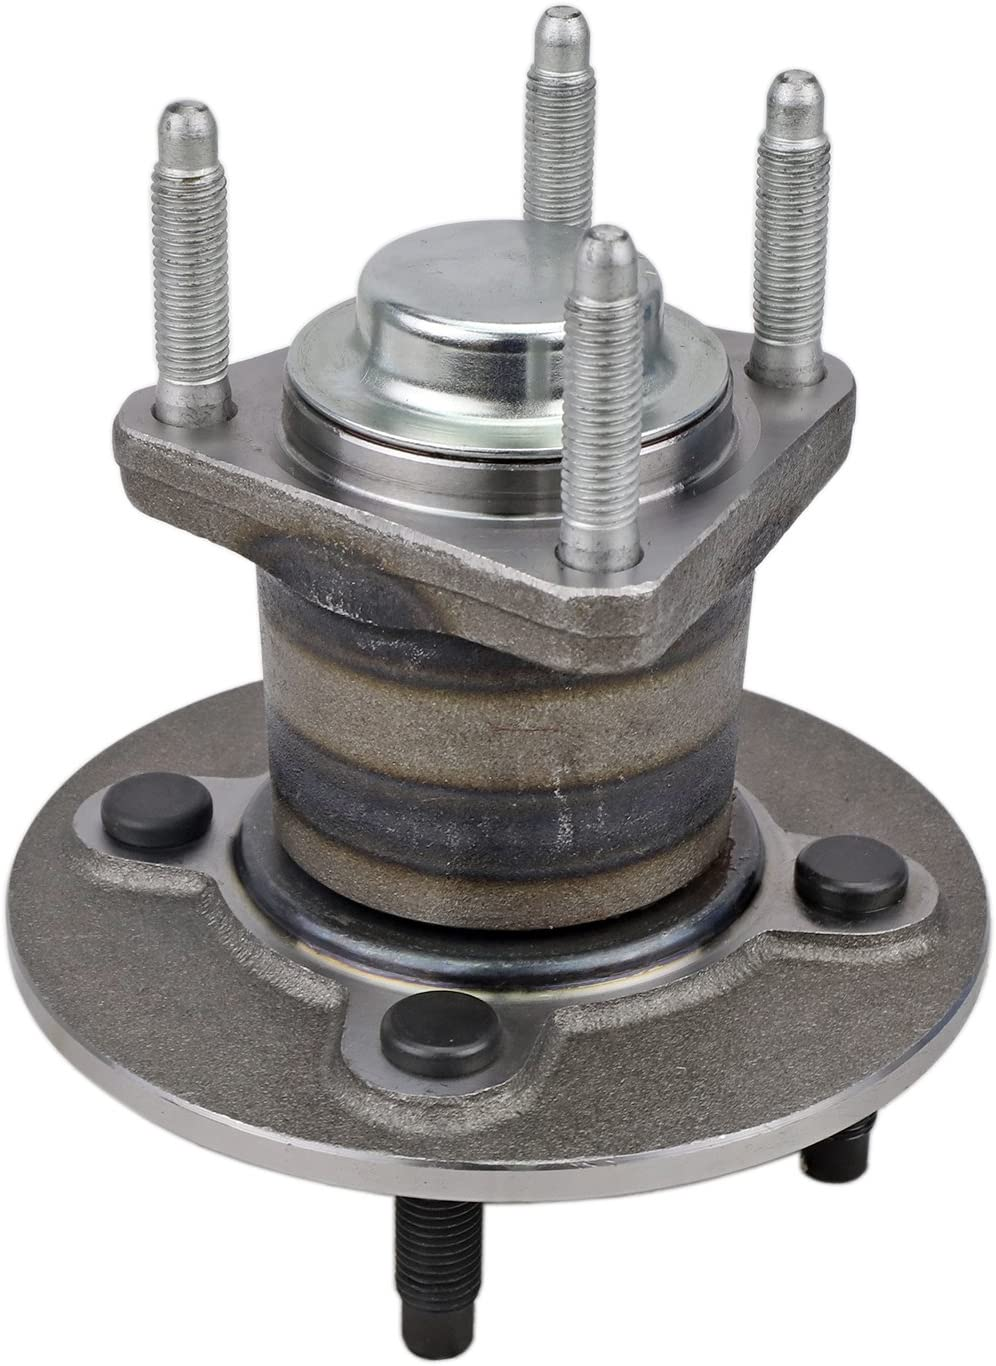 Bodeman - Rear Wheel Hub & Bearing Assembly for 2005-2010 Chevy Cobalt/for 2007-2010 Pontiac G5 / for 2003-2007 Saturn Ion - Non-ABS Models